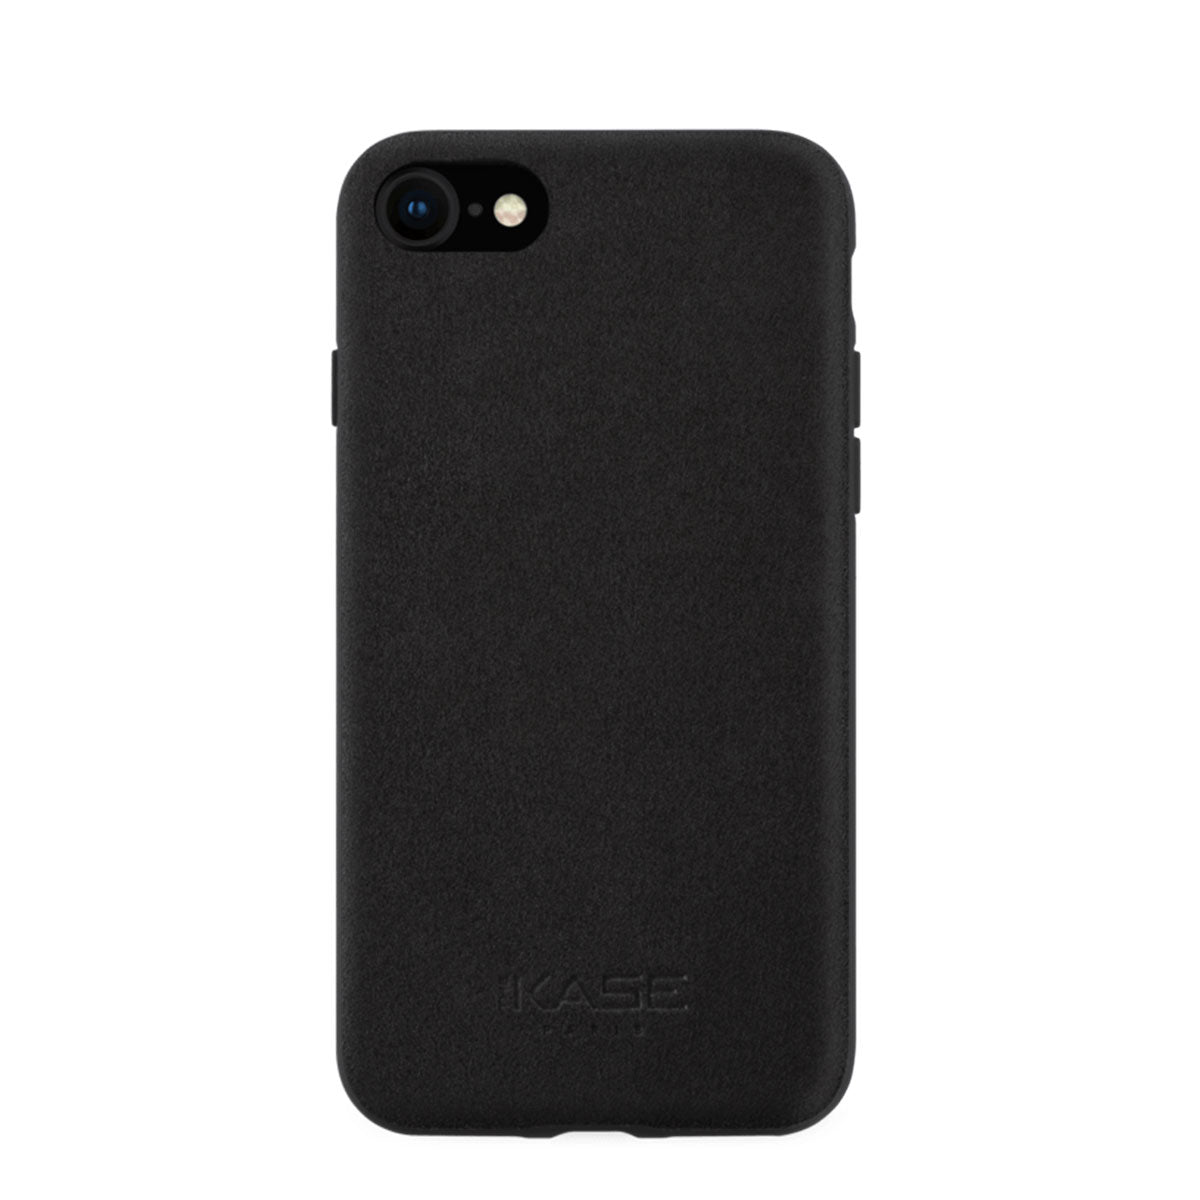 Capa de Smartphone The Kase Alcântara Apple iPhone 7/ 8/ SE 2020 Preta